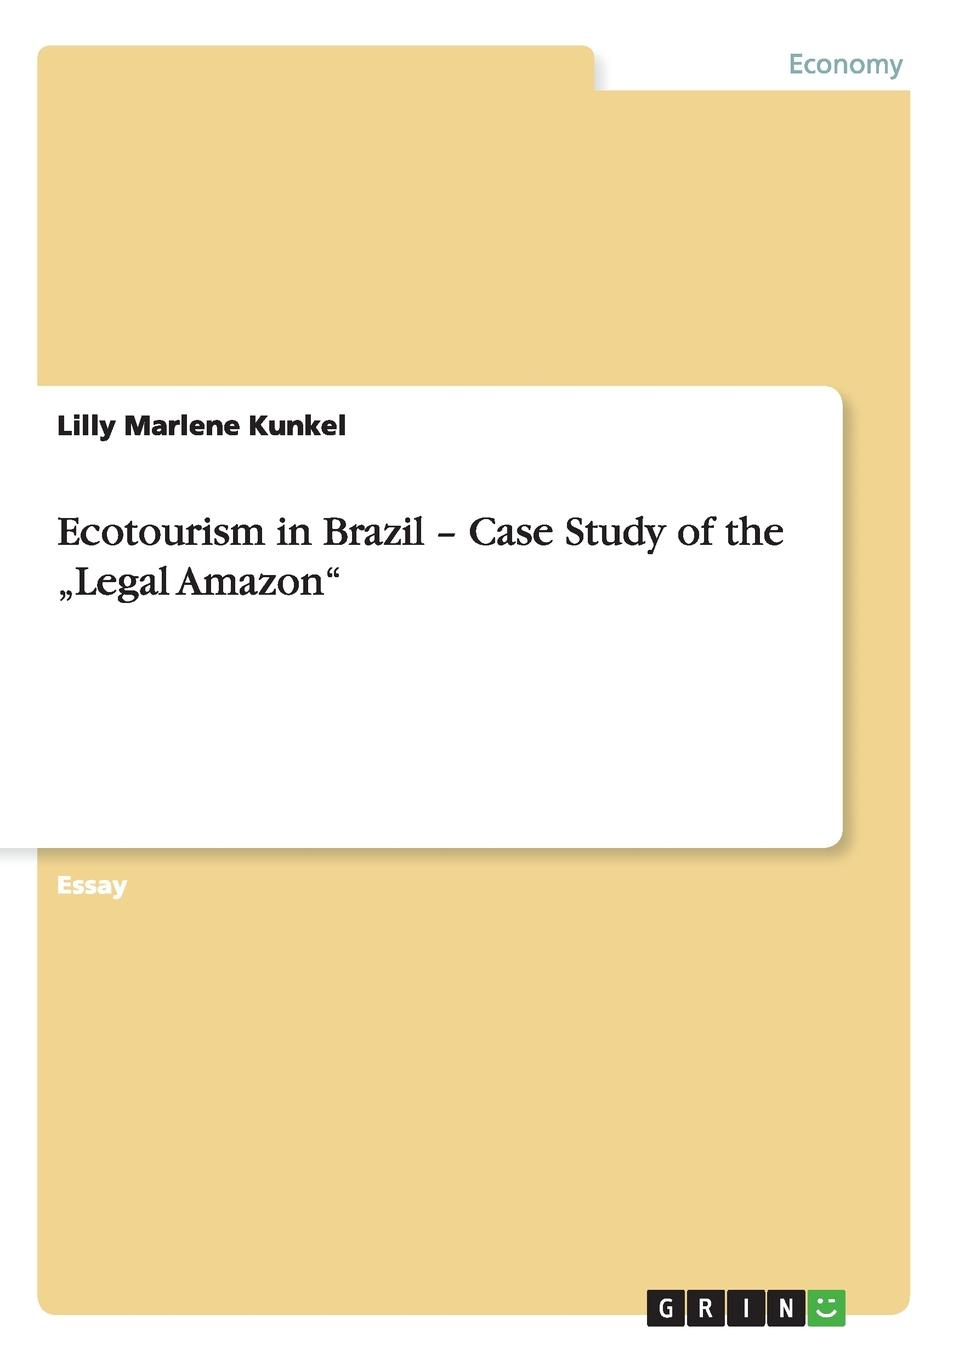 Lilly Marlene Kunkel Ecotourism in Brazil - Case Study of the .Legal Amazon